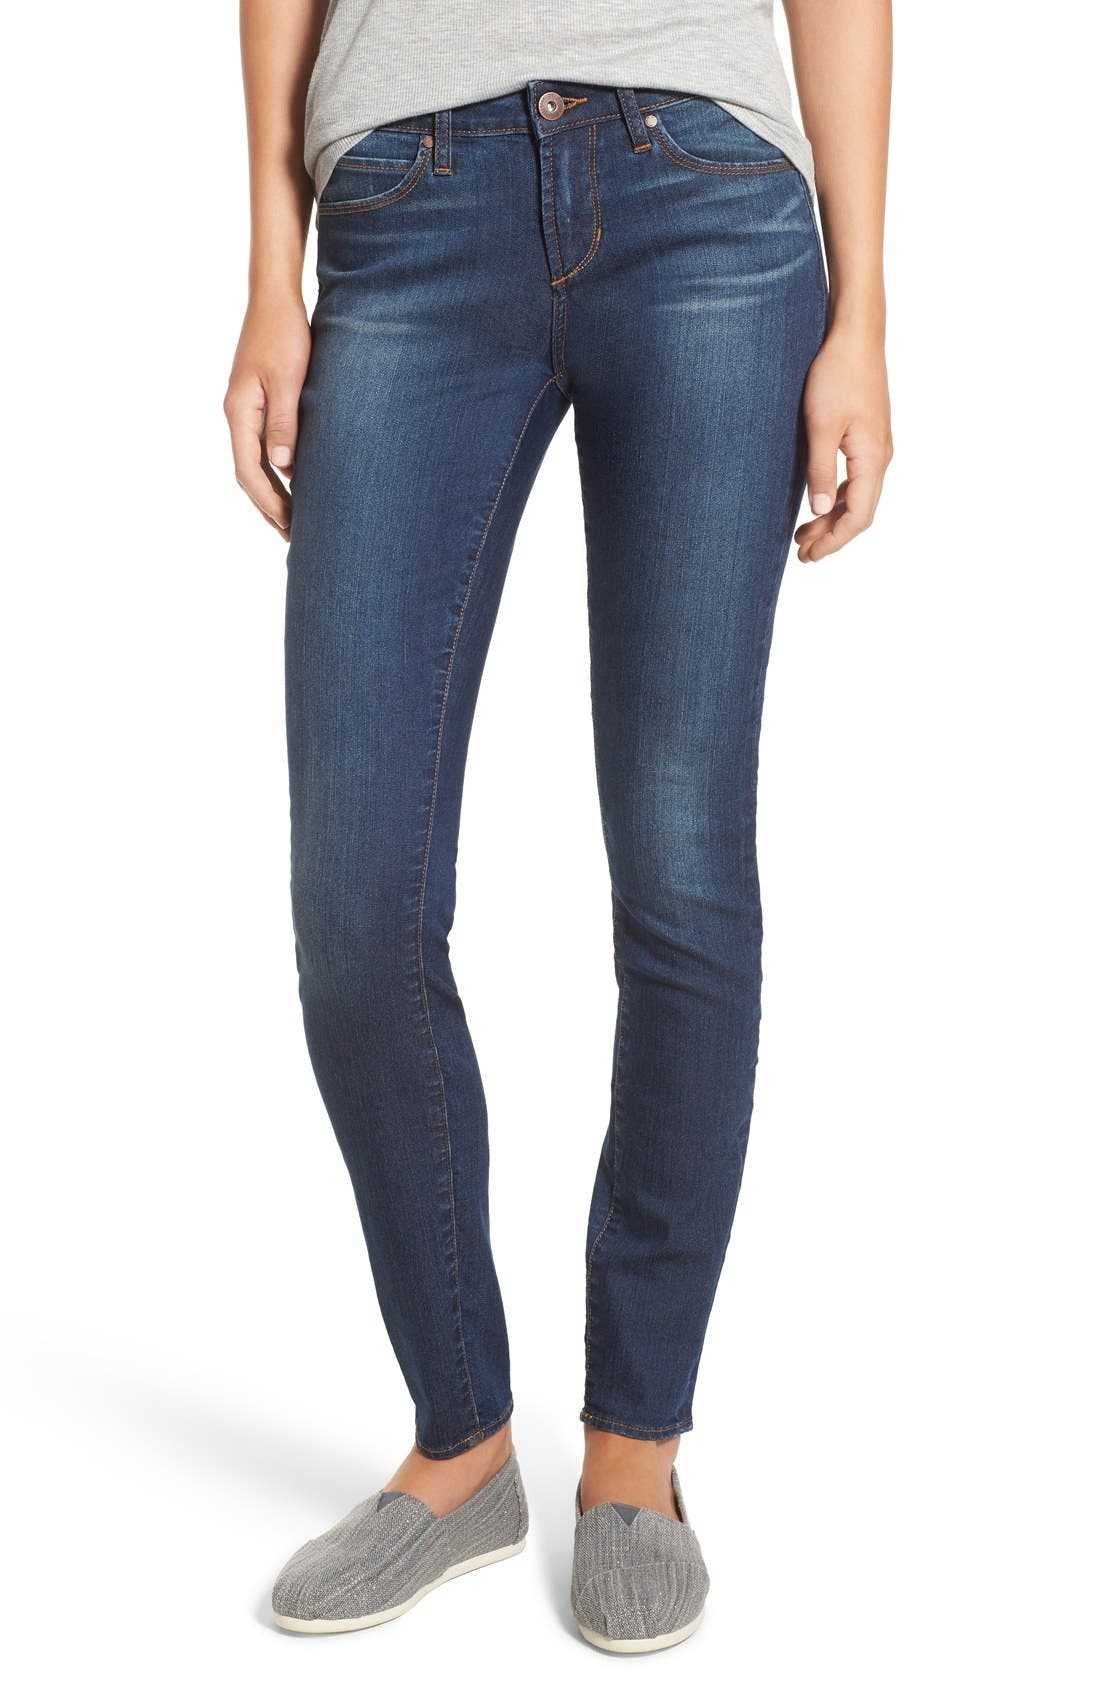 Alternate Image 1 Selected - Articles of Society 'Mya' Skinny Jeans (Americana)